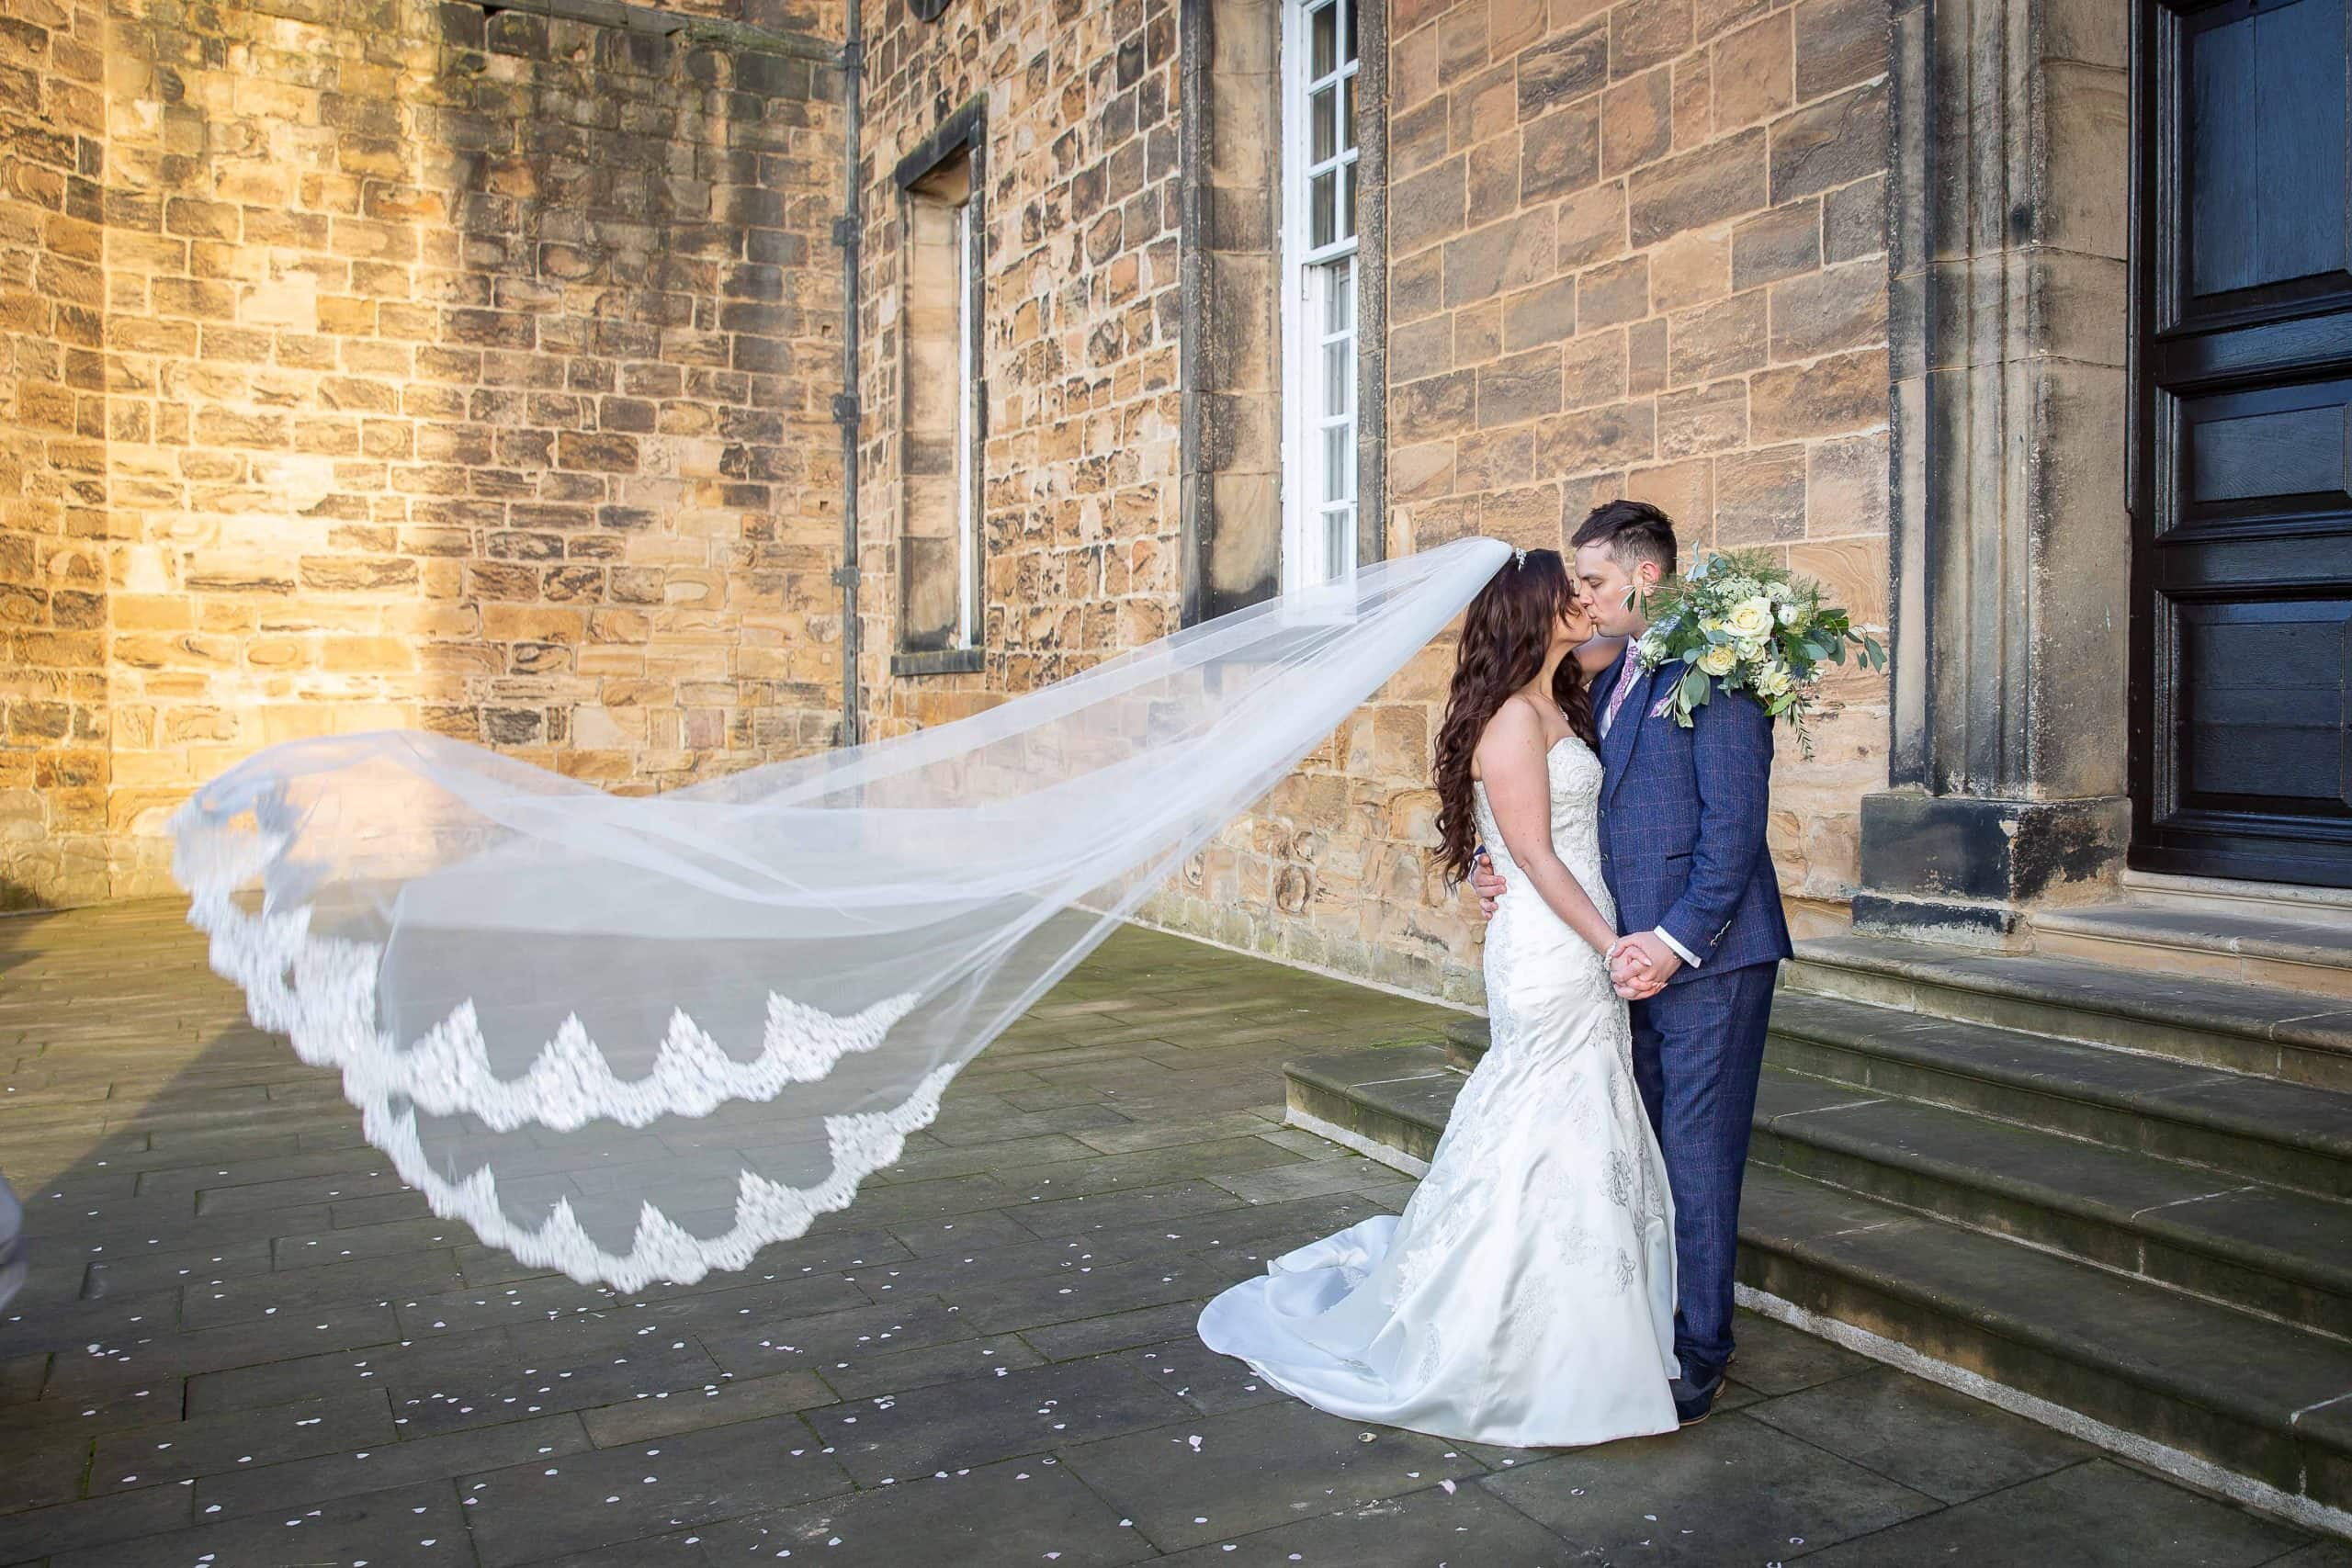 Bride and groom with veil blowing in wind